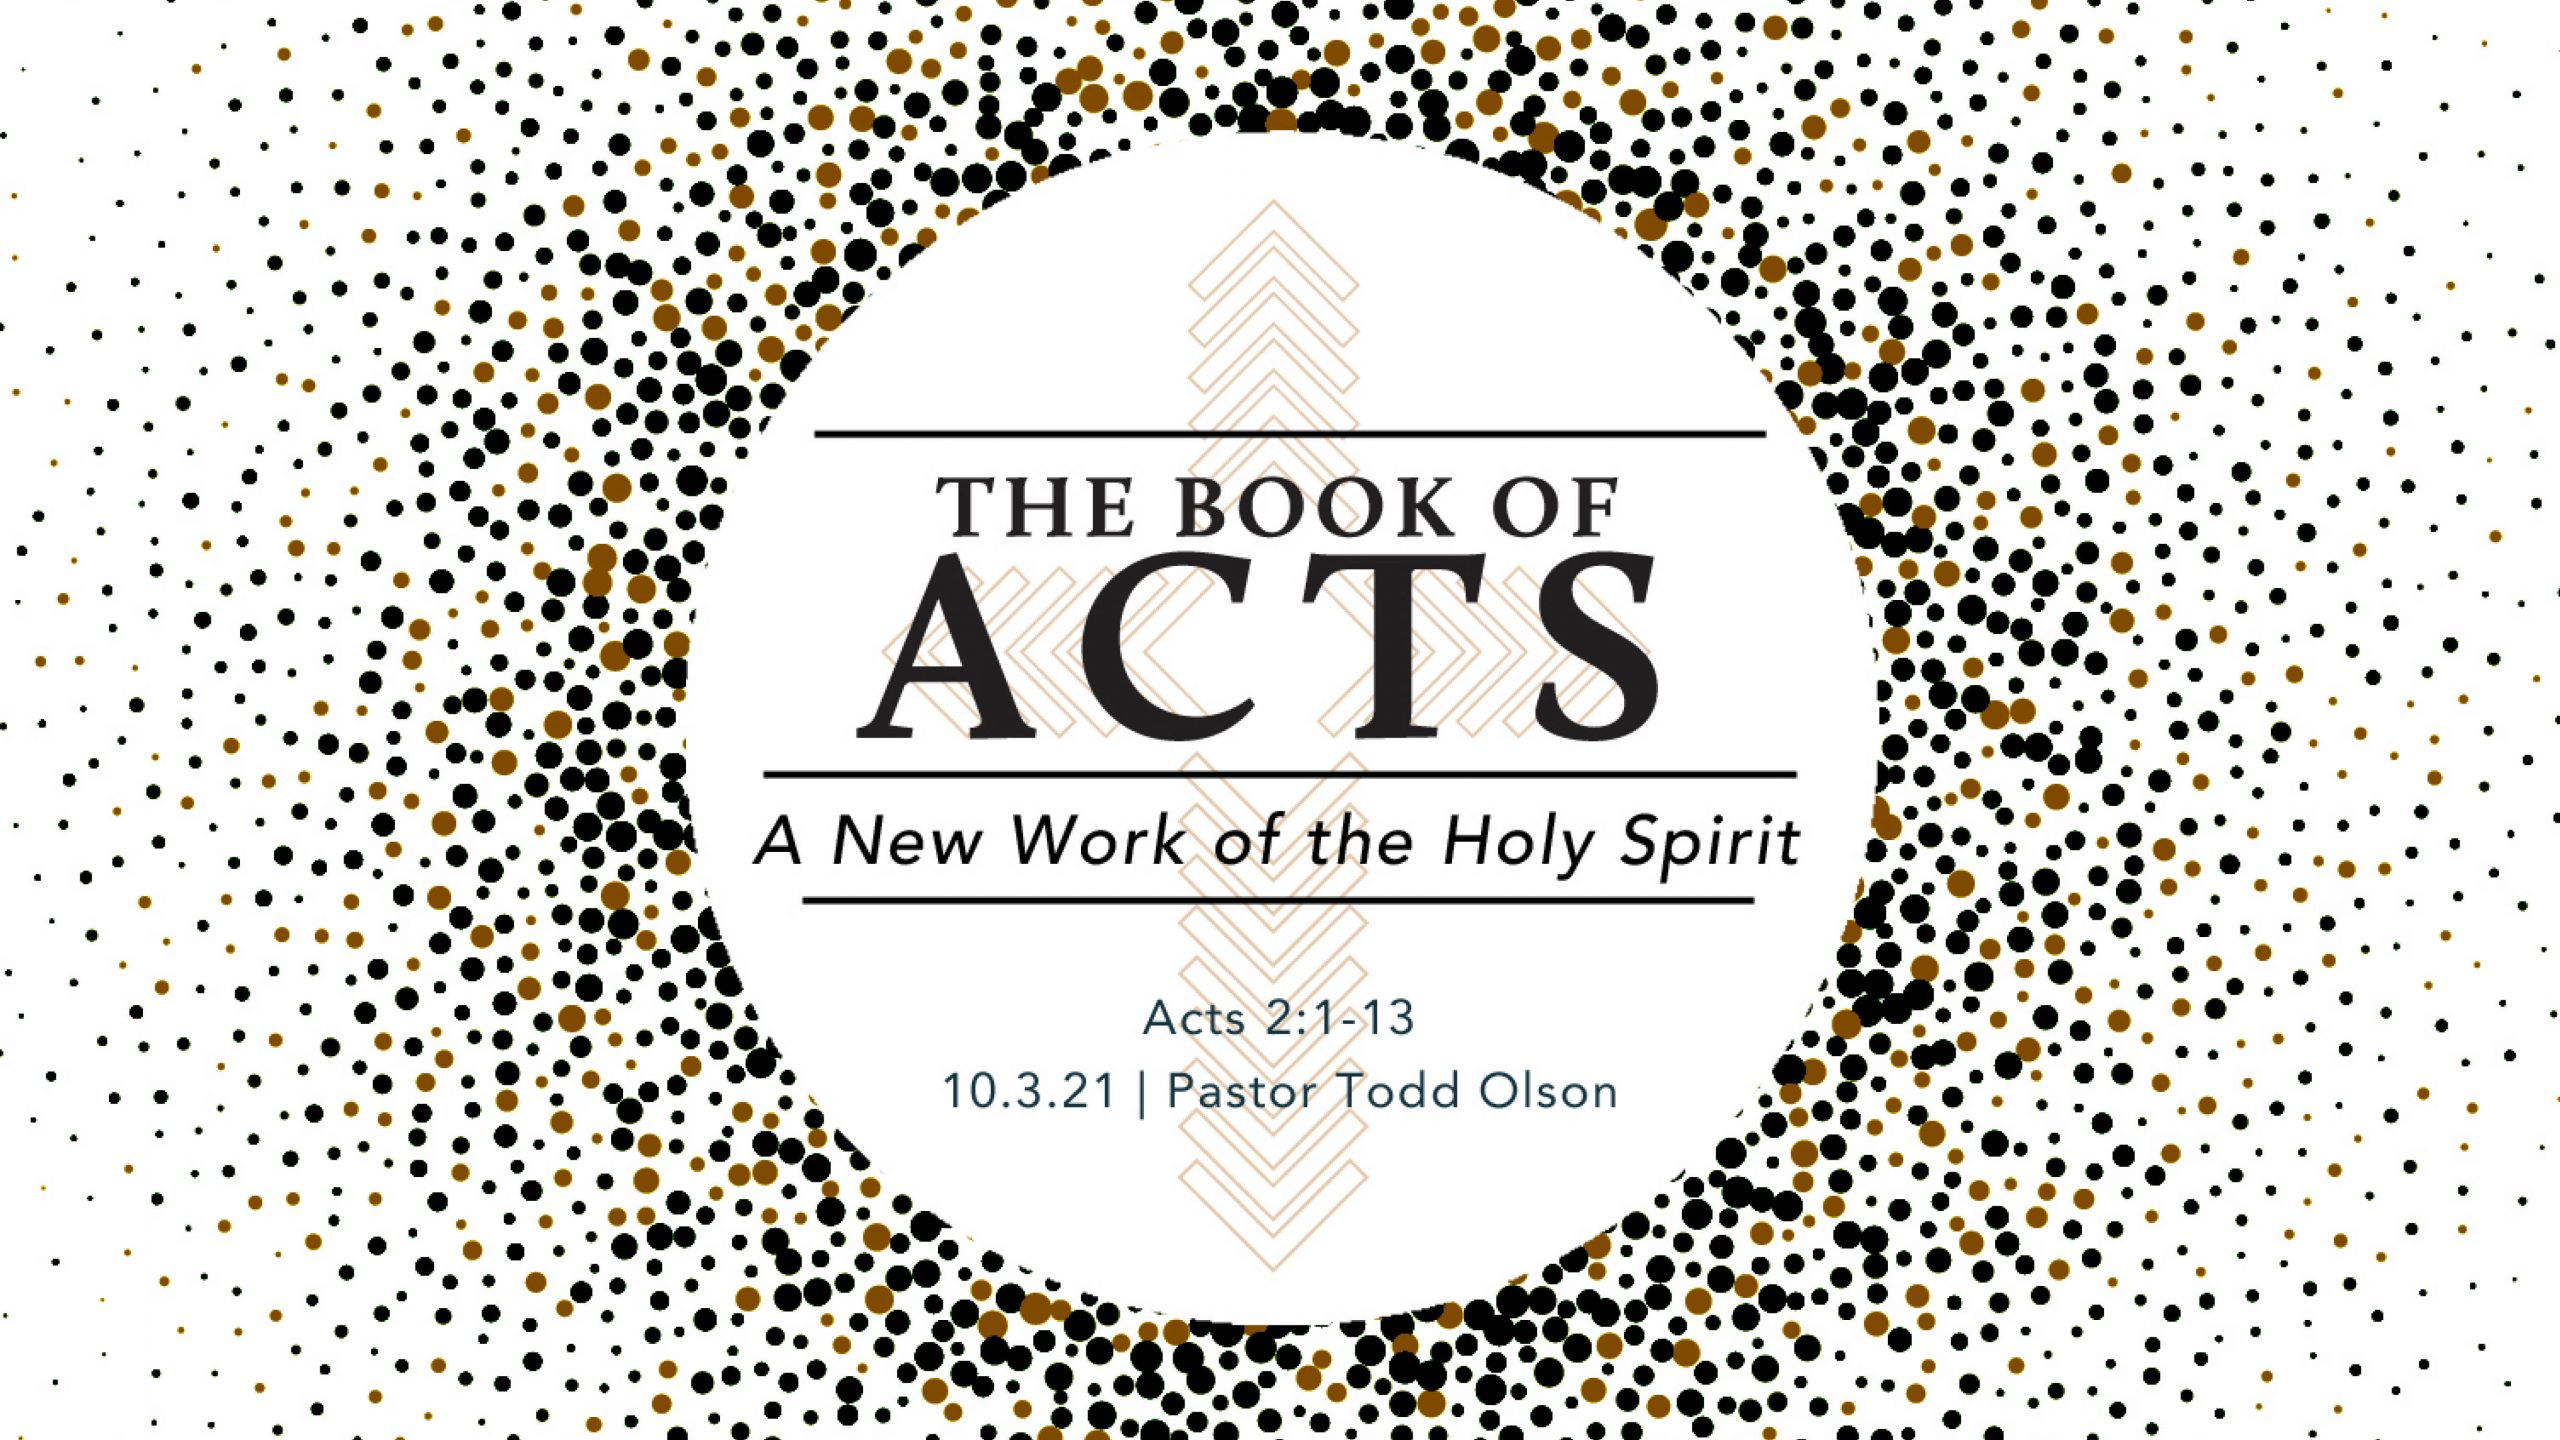 A New Work of the Holy Spirit